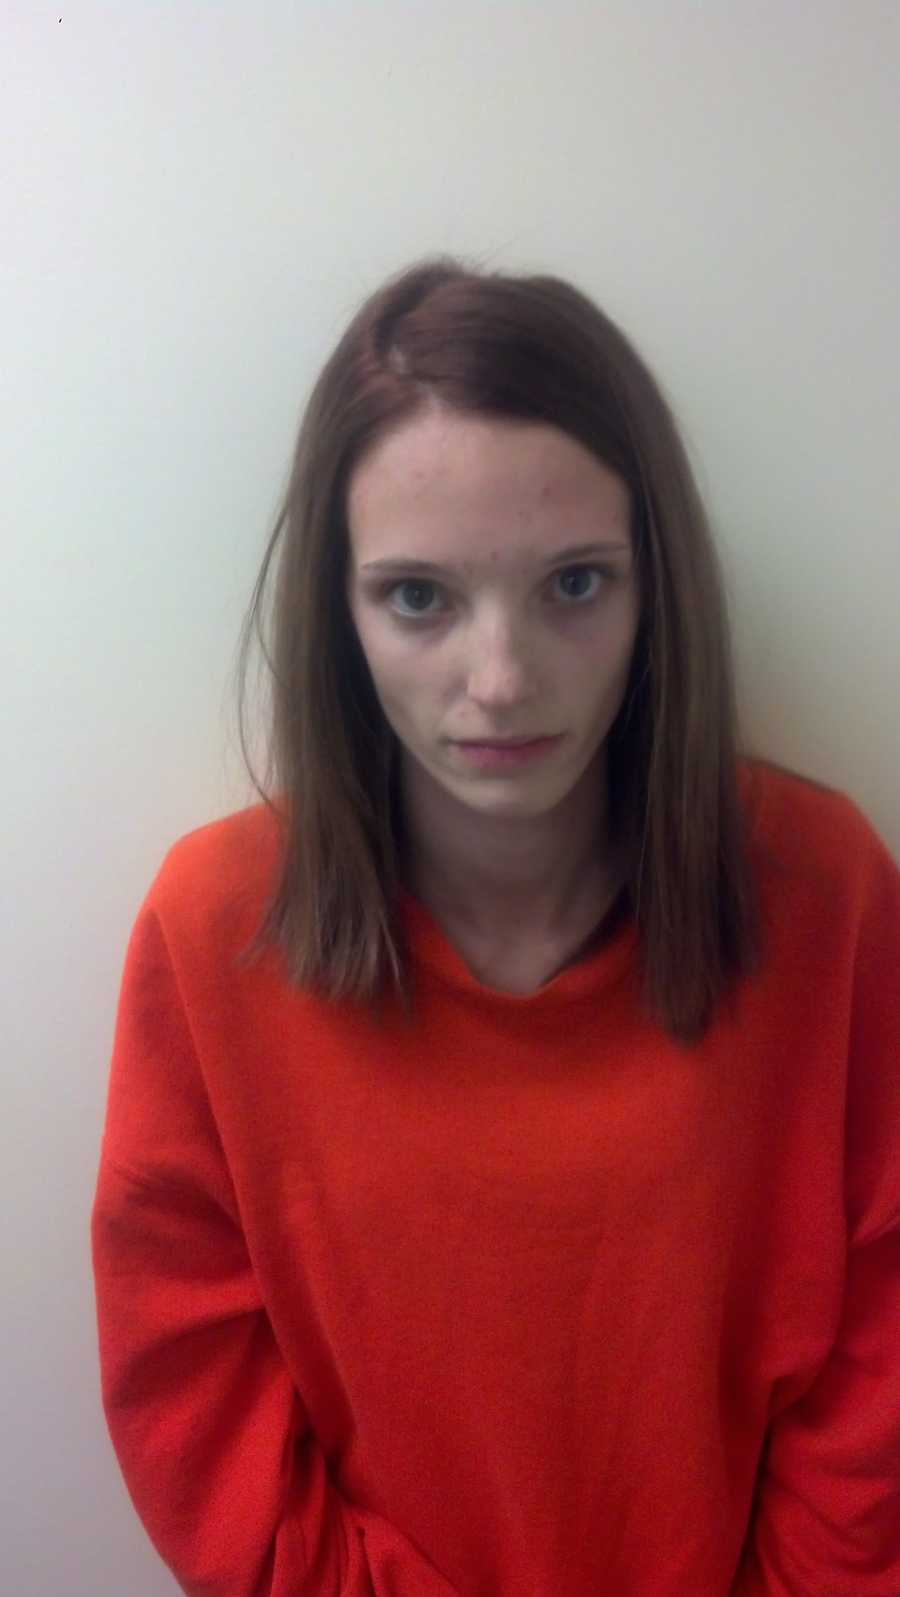 Amber Meserve is charged with 5 counts of Burglary of a Dwelling, 17 counts of Theft of a Firearm, 4 counts of Theft by Unauthorized Taking or Transfer.